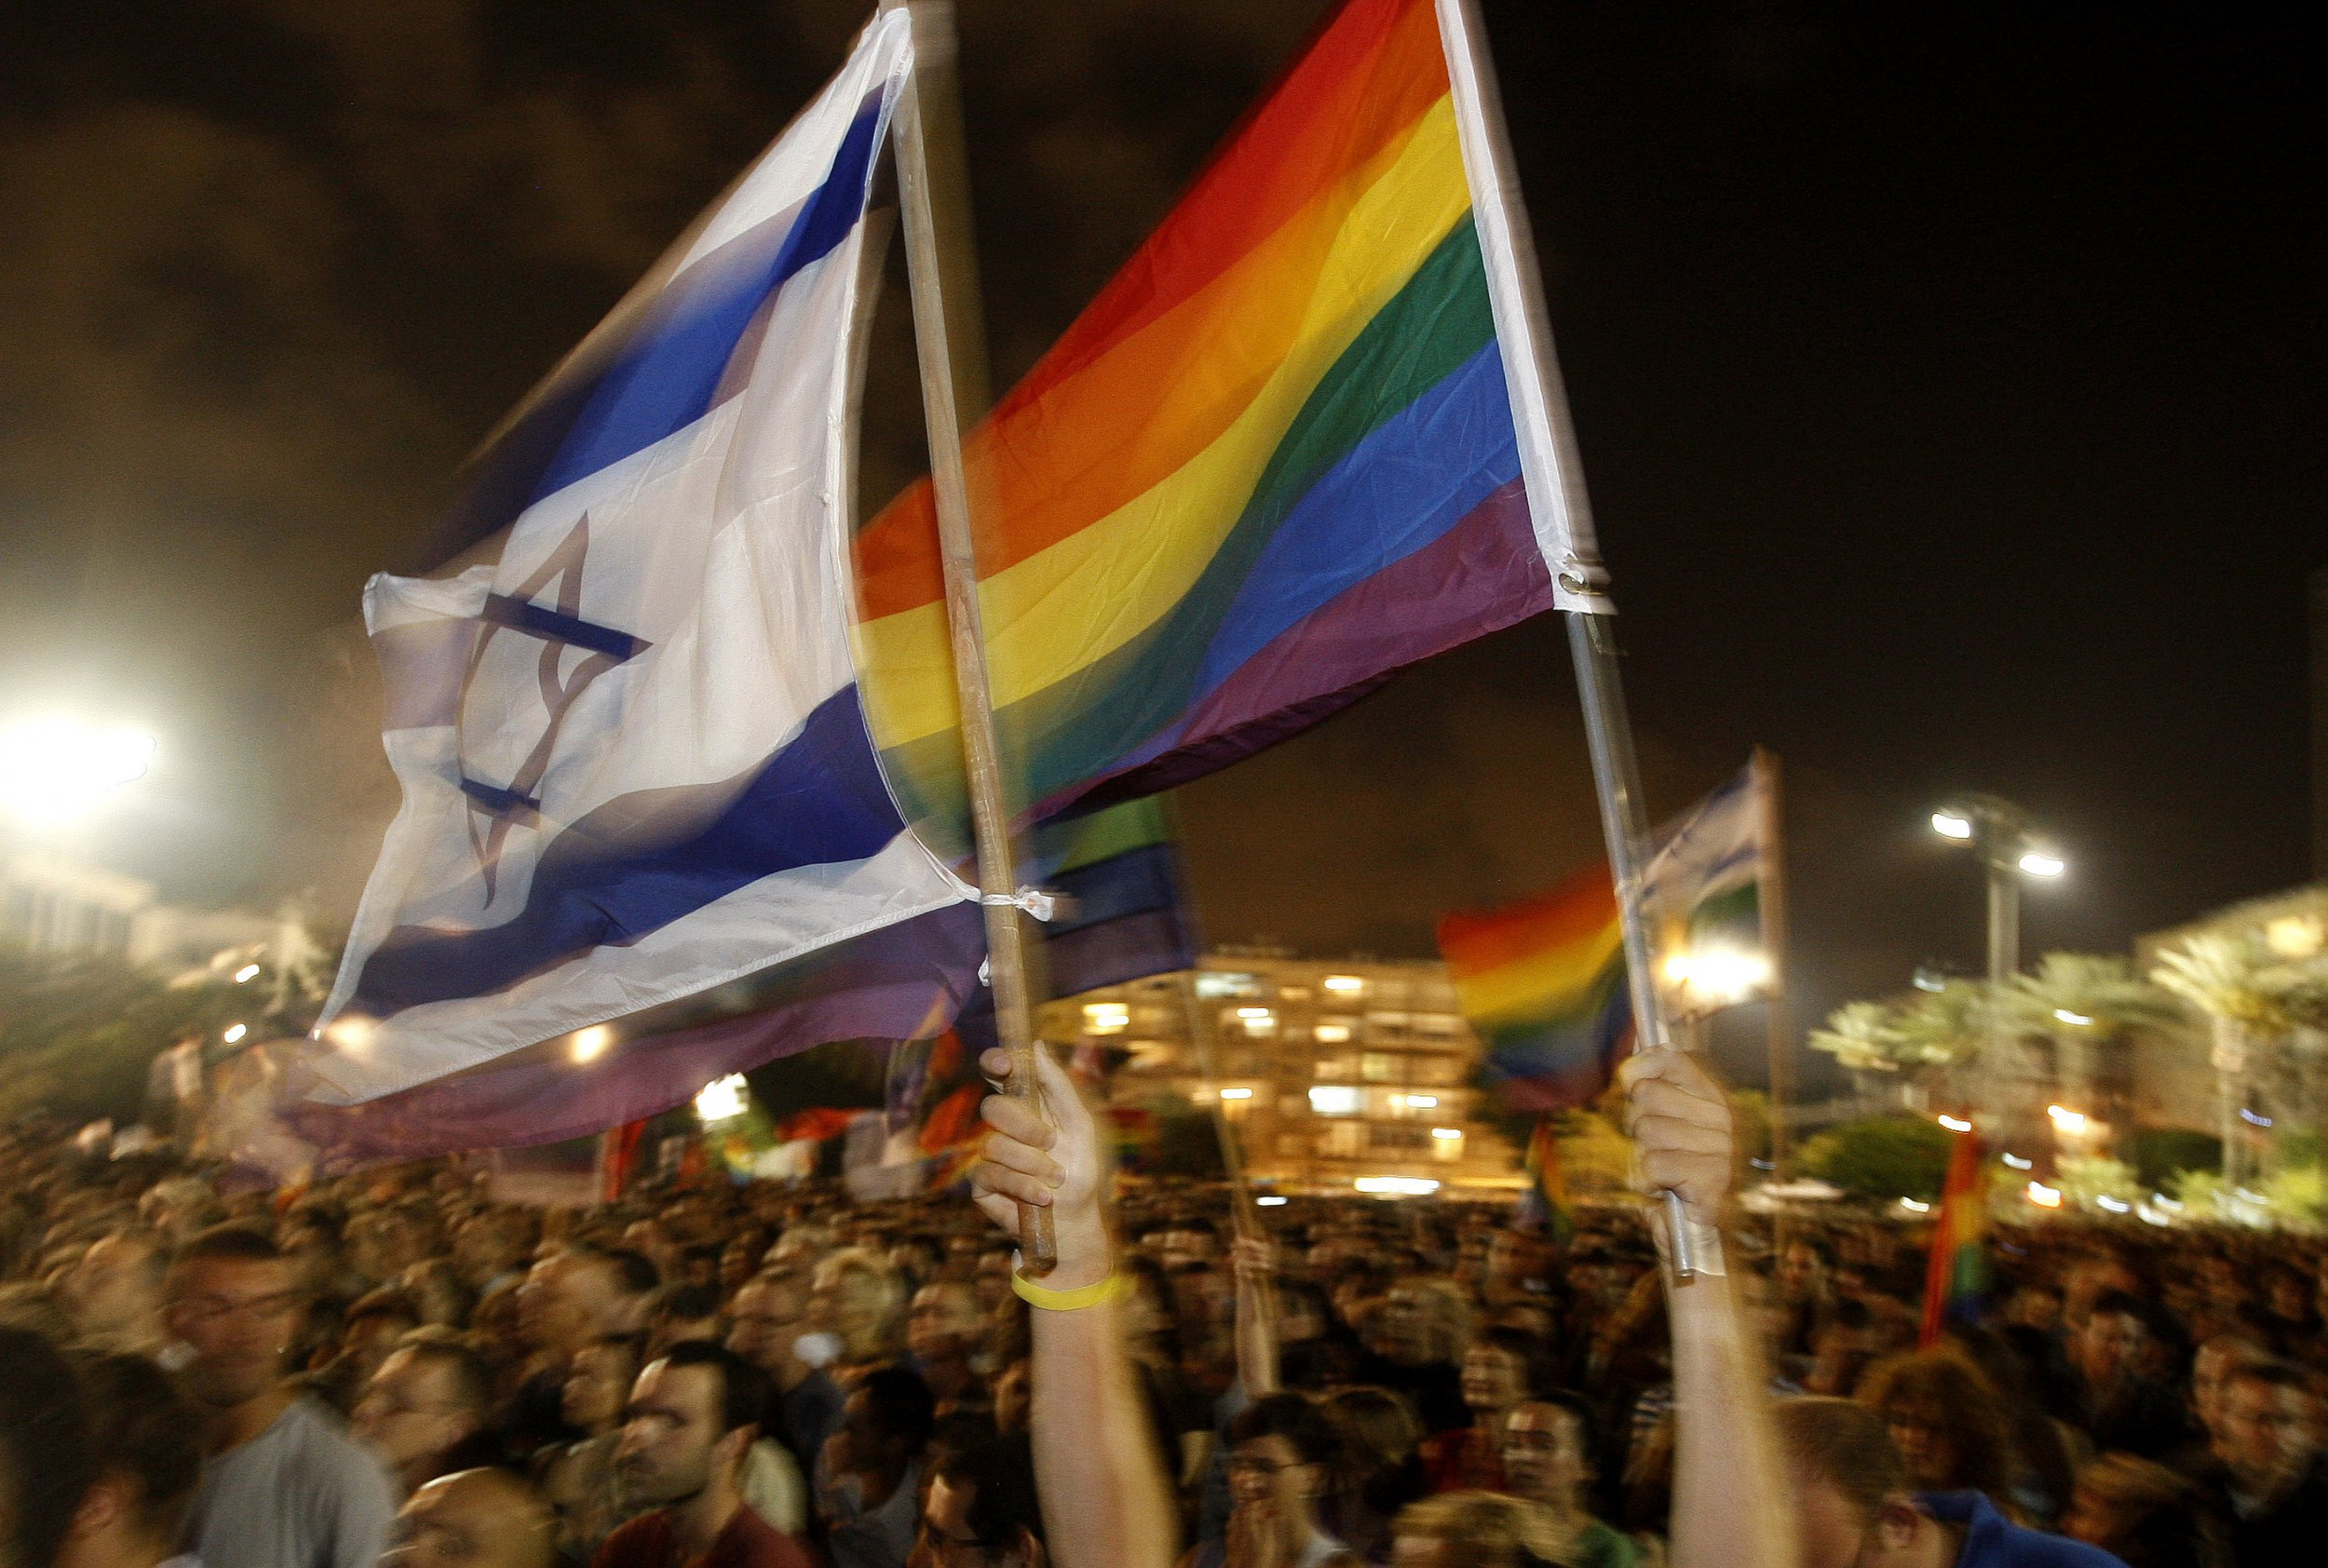 Ten Days on LGBT Birthright Israel